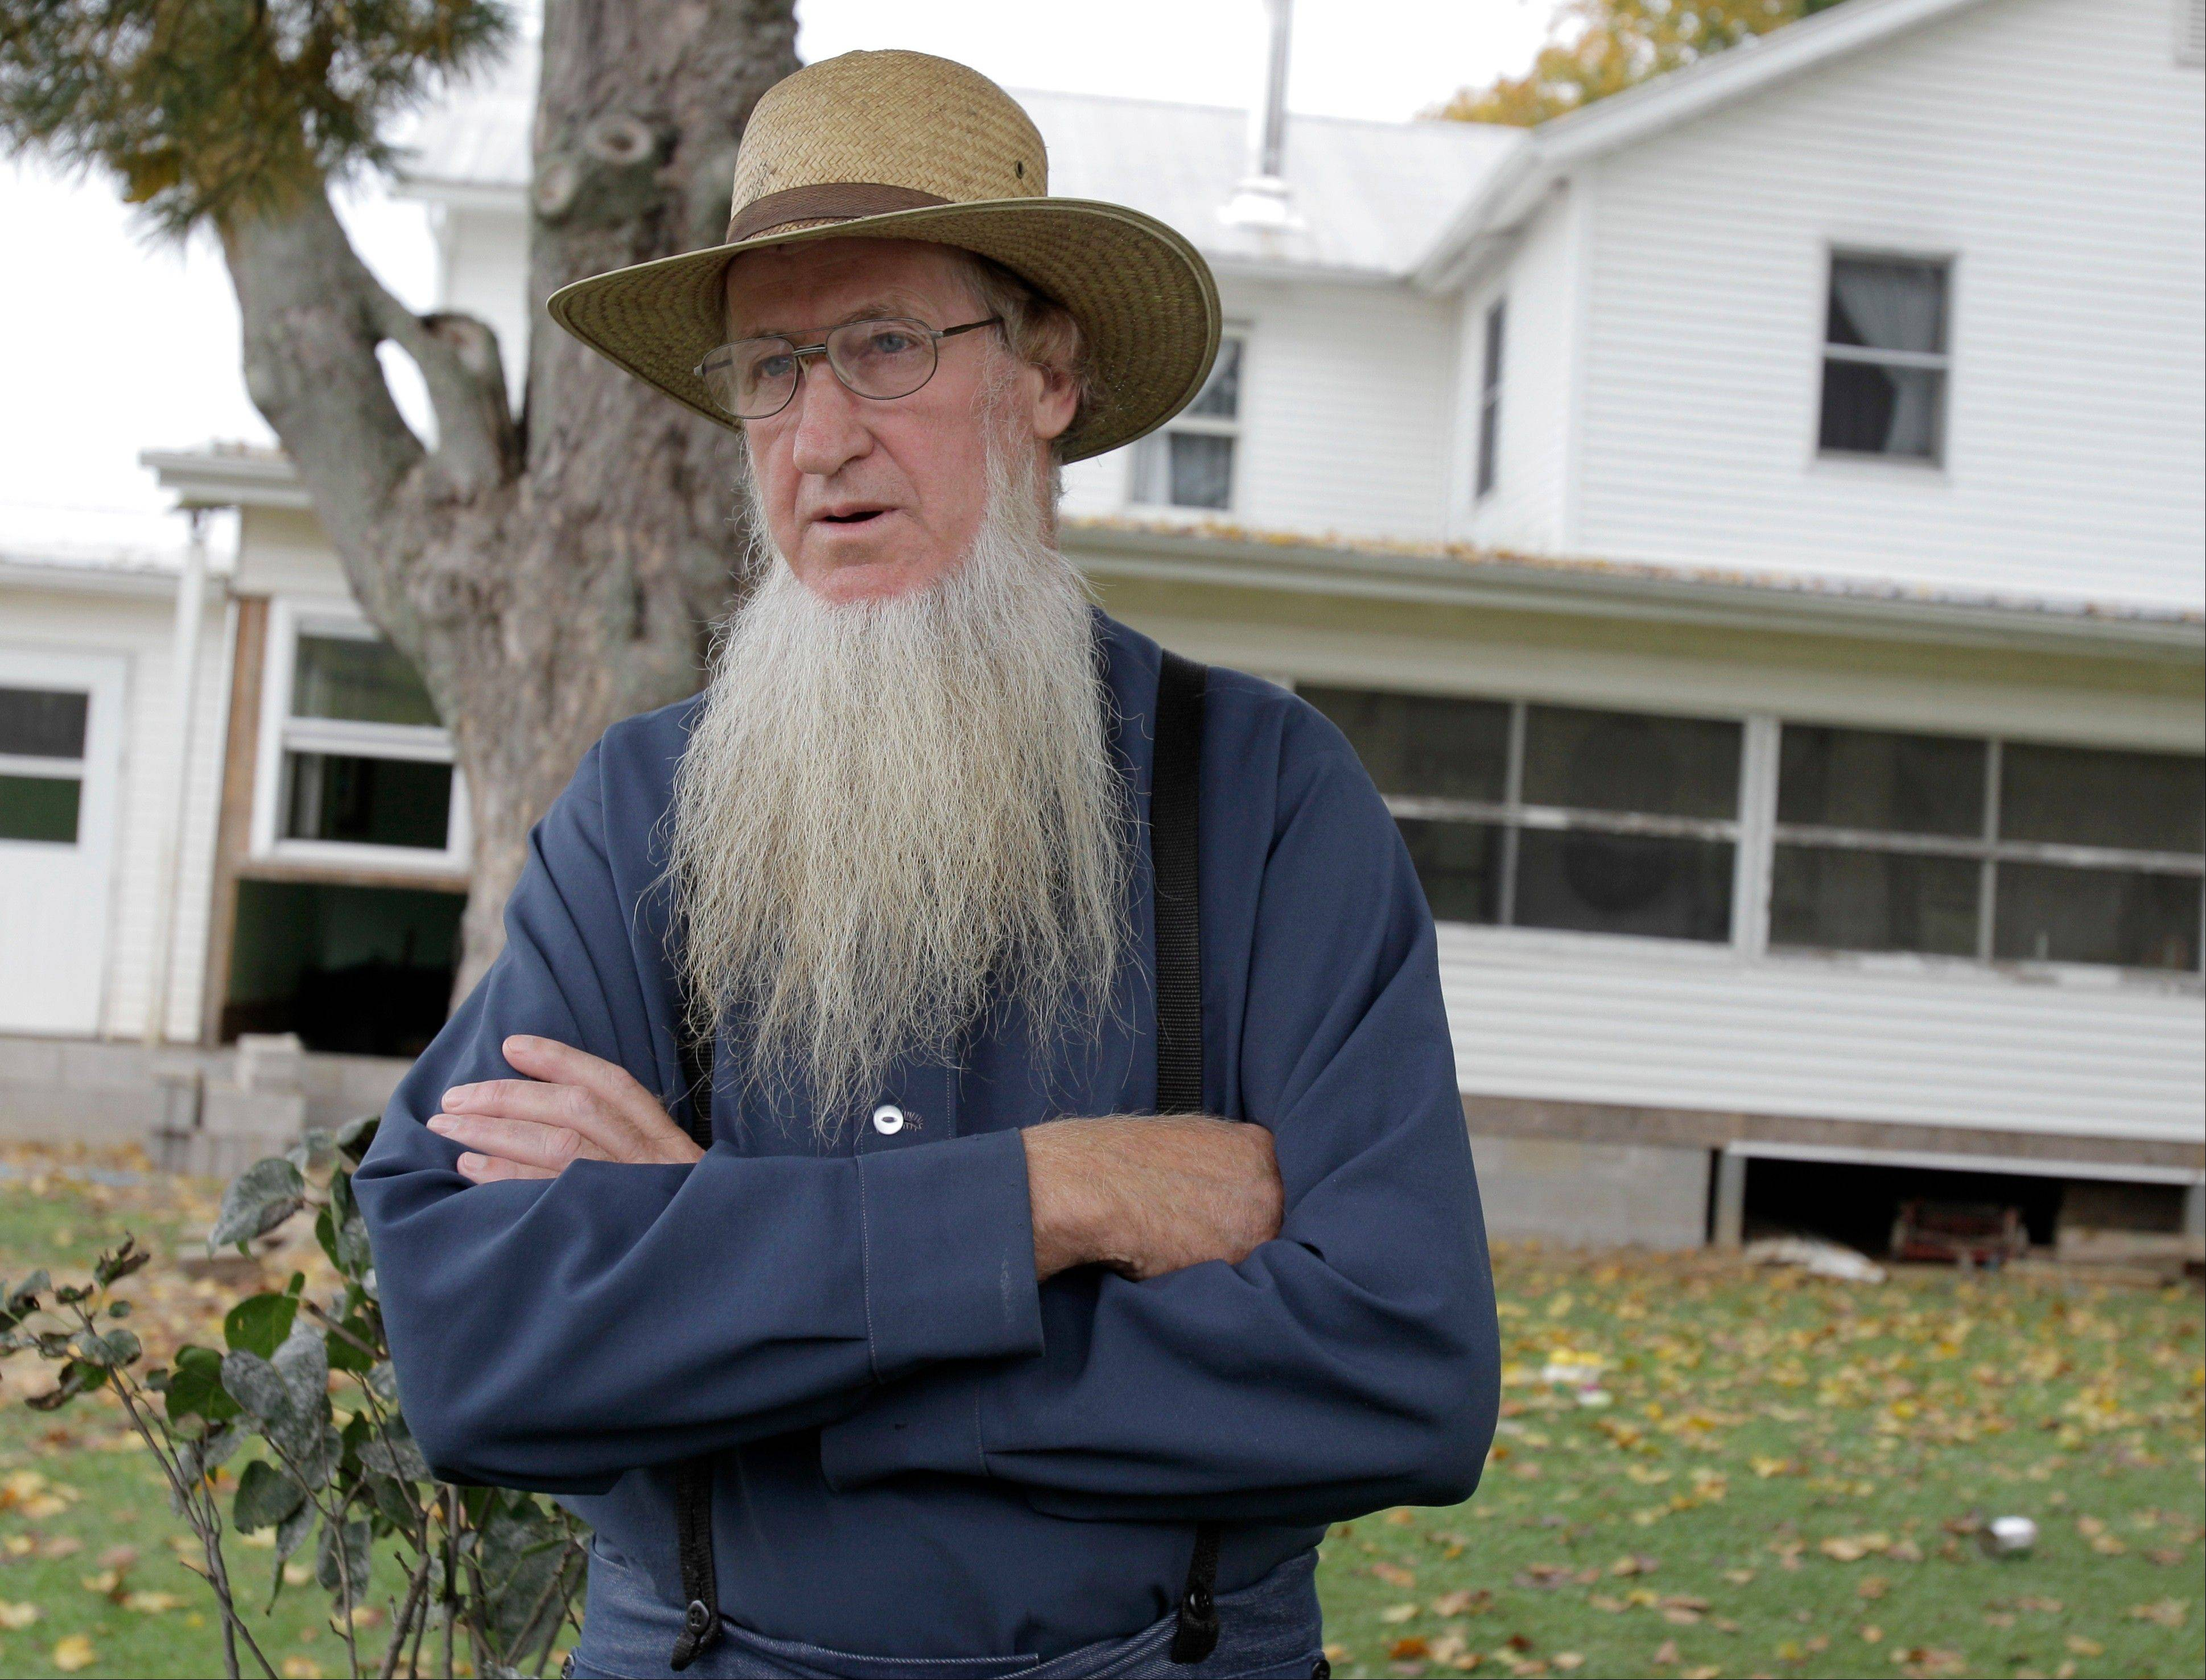 Sam Mullet, the leader of 16 Amish convicted in beard-cutting attacks on other members of their faith in Ohio, says he has been blamed for running a cult and is ready to take the punishment.